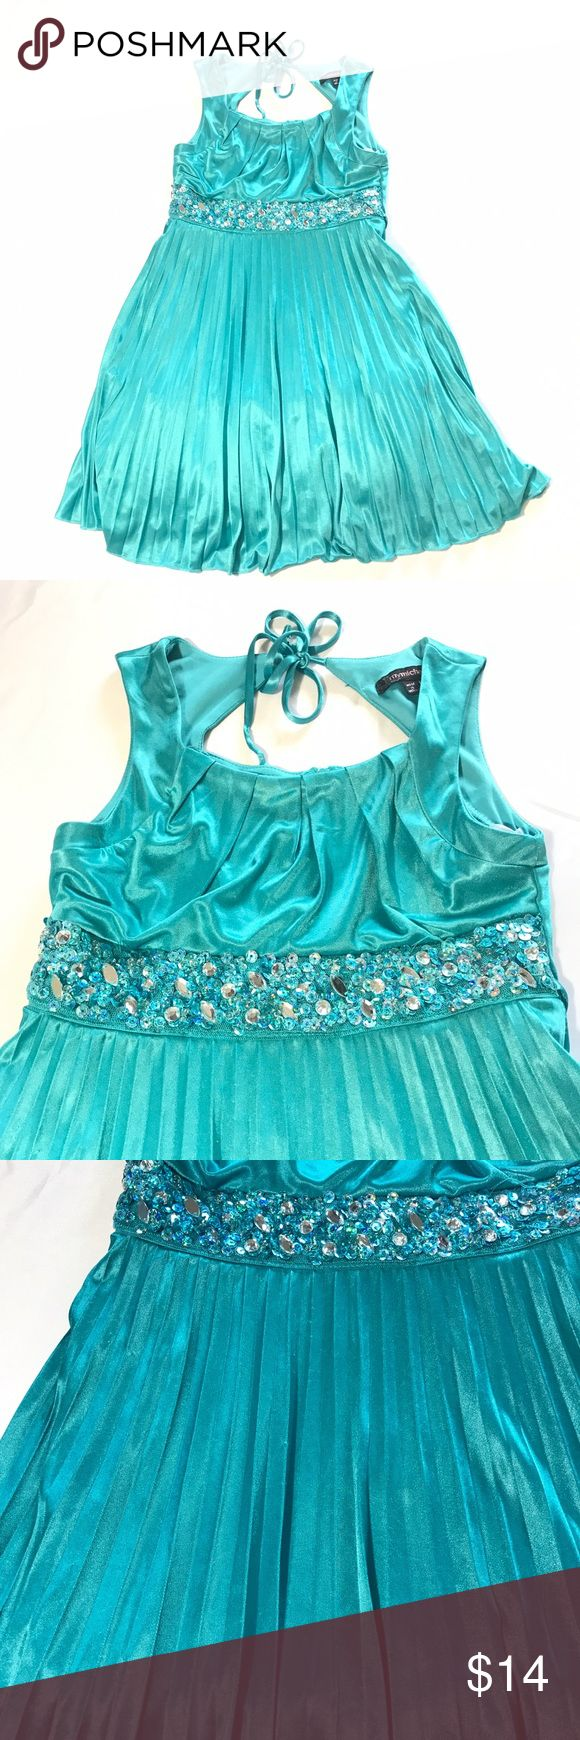 My Michelle Turquoise Aqua Party Formal Dress 7 So beautiful and Flowy, Excellent condition with some pilling on front skirt but with pleats hardly noticeable. My Michelle Dresses Formal